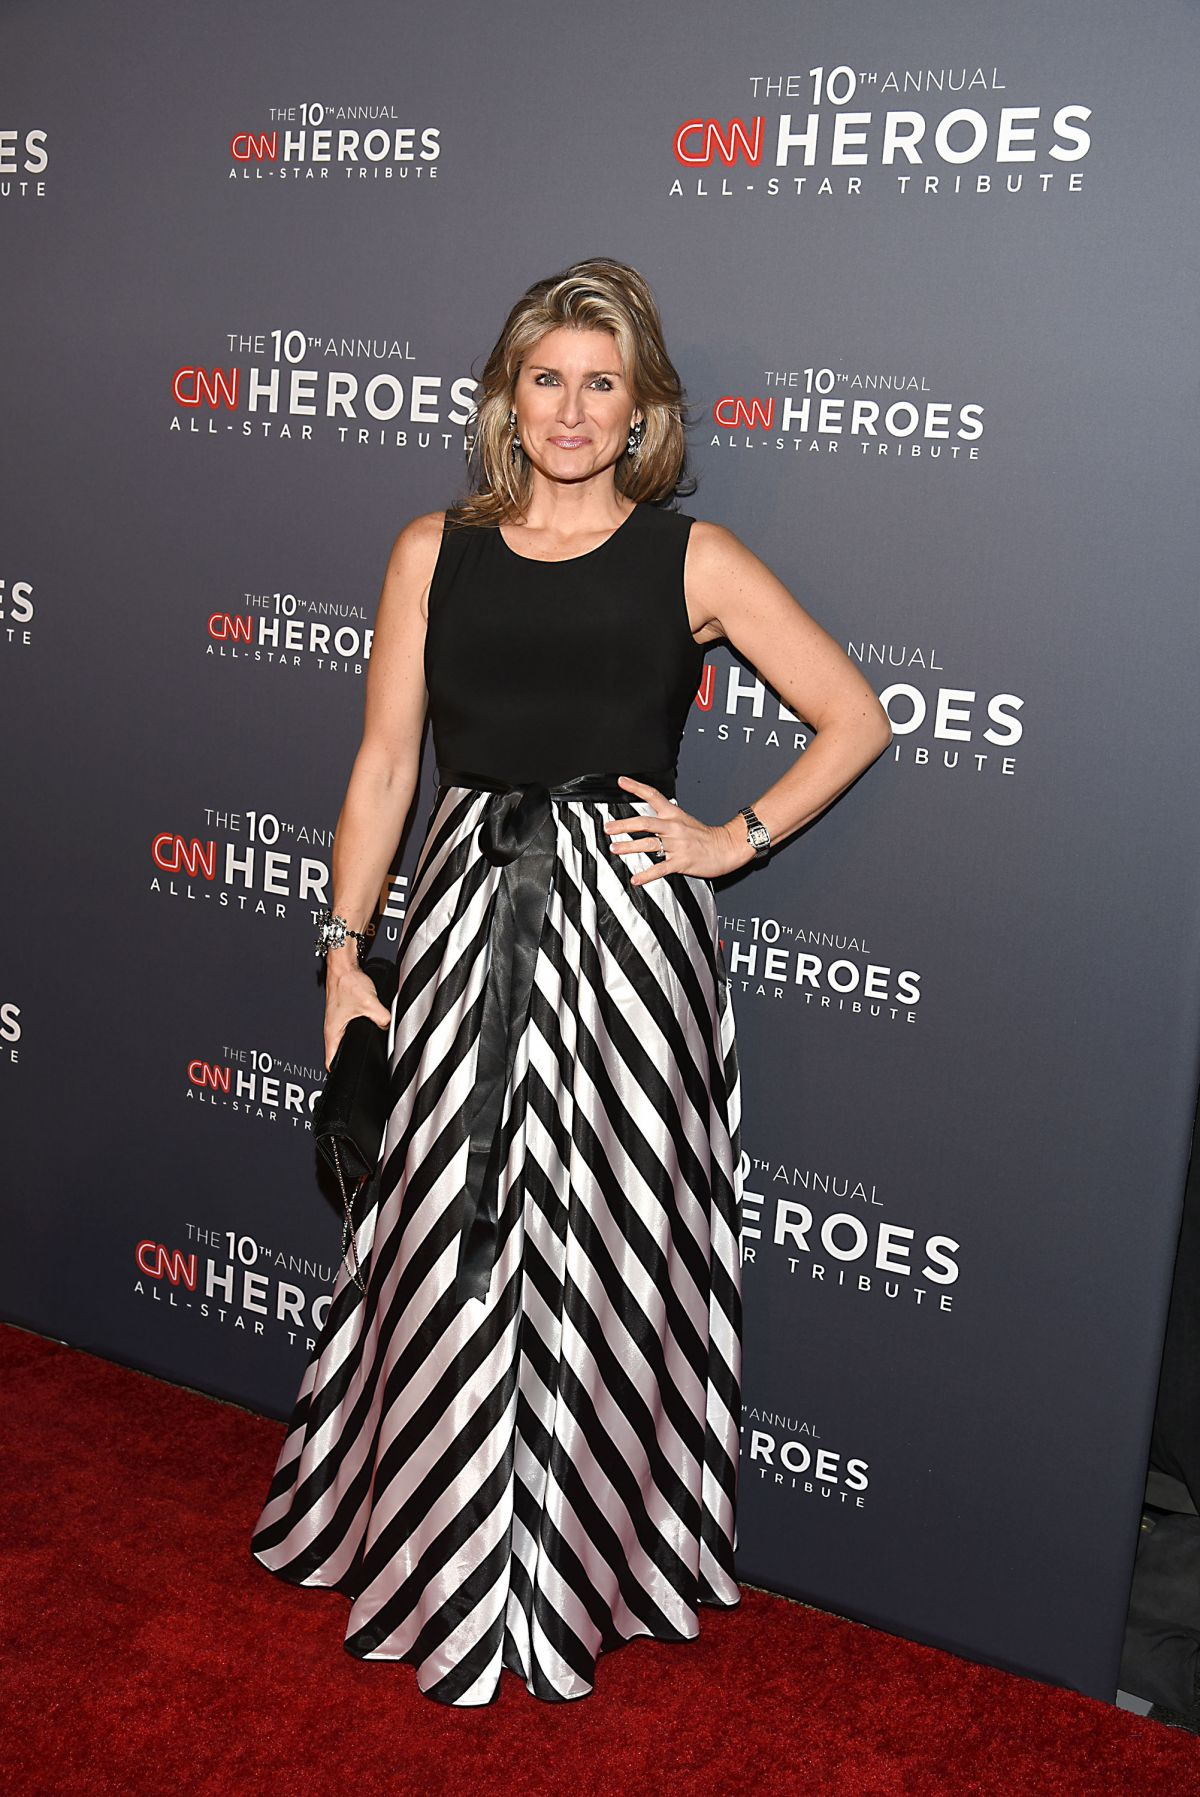 ASHLEIGH BANFIELD at CNN 'Heroes' 2016 in New York 12/11/2016